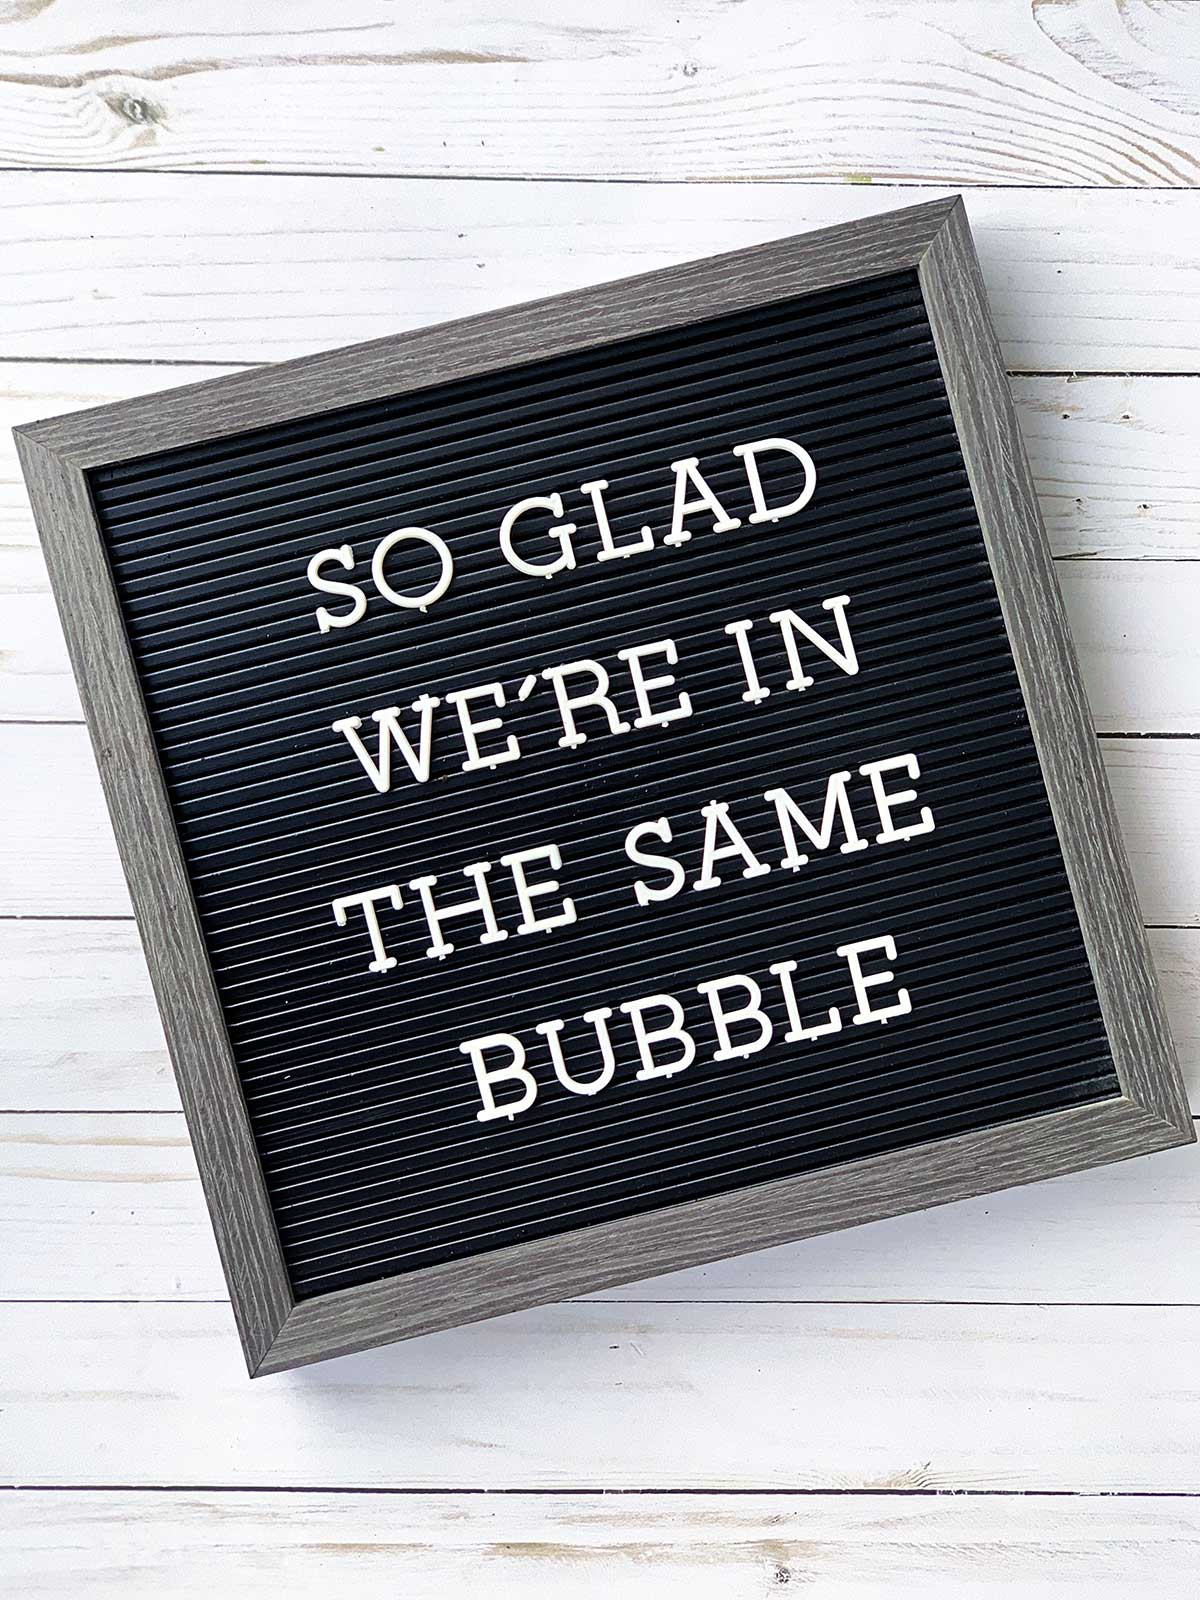 Letter board with the saying - So glad we're in the same bubble.